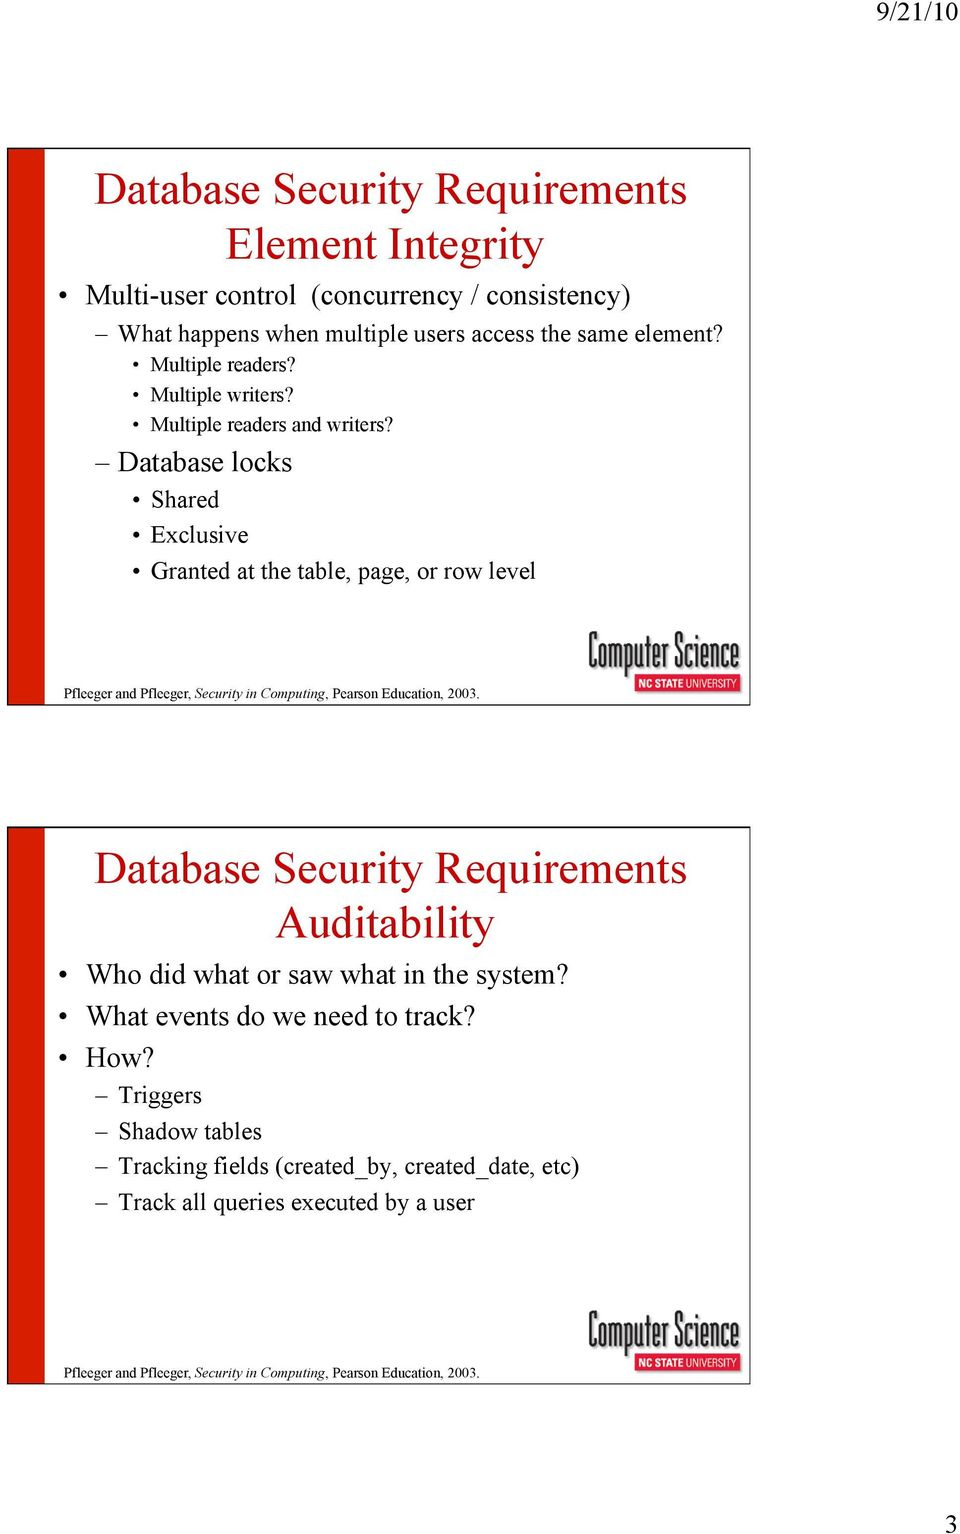 Database Security Requirements Pdf And Integrity Locks Shared Exclusive Granted At The Table Page Or Row Level Auditability Who